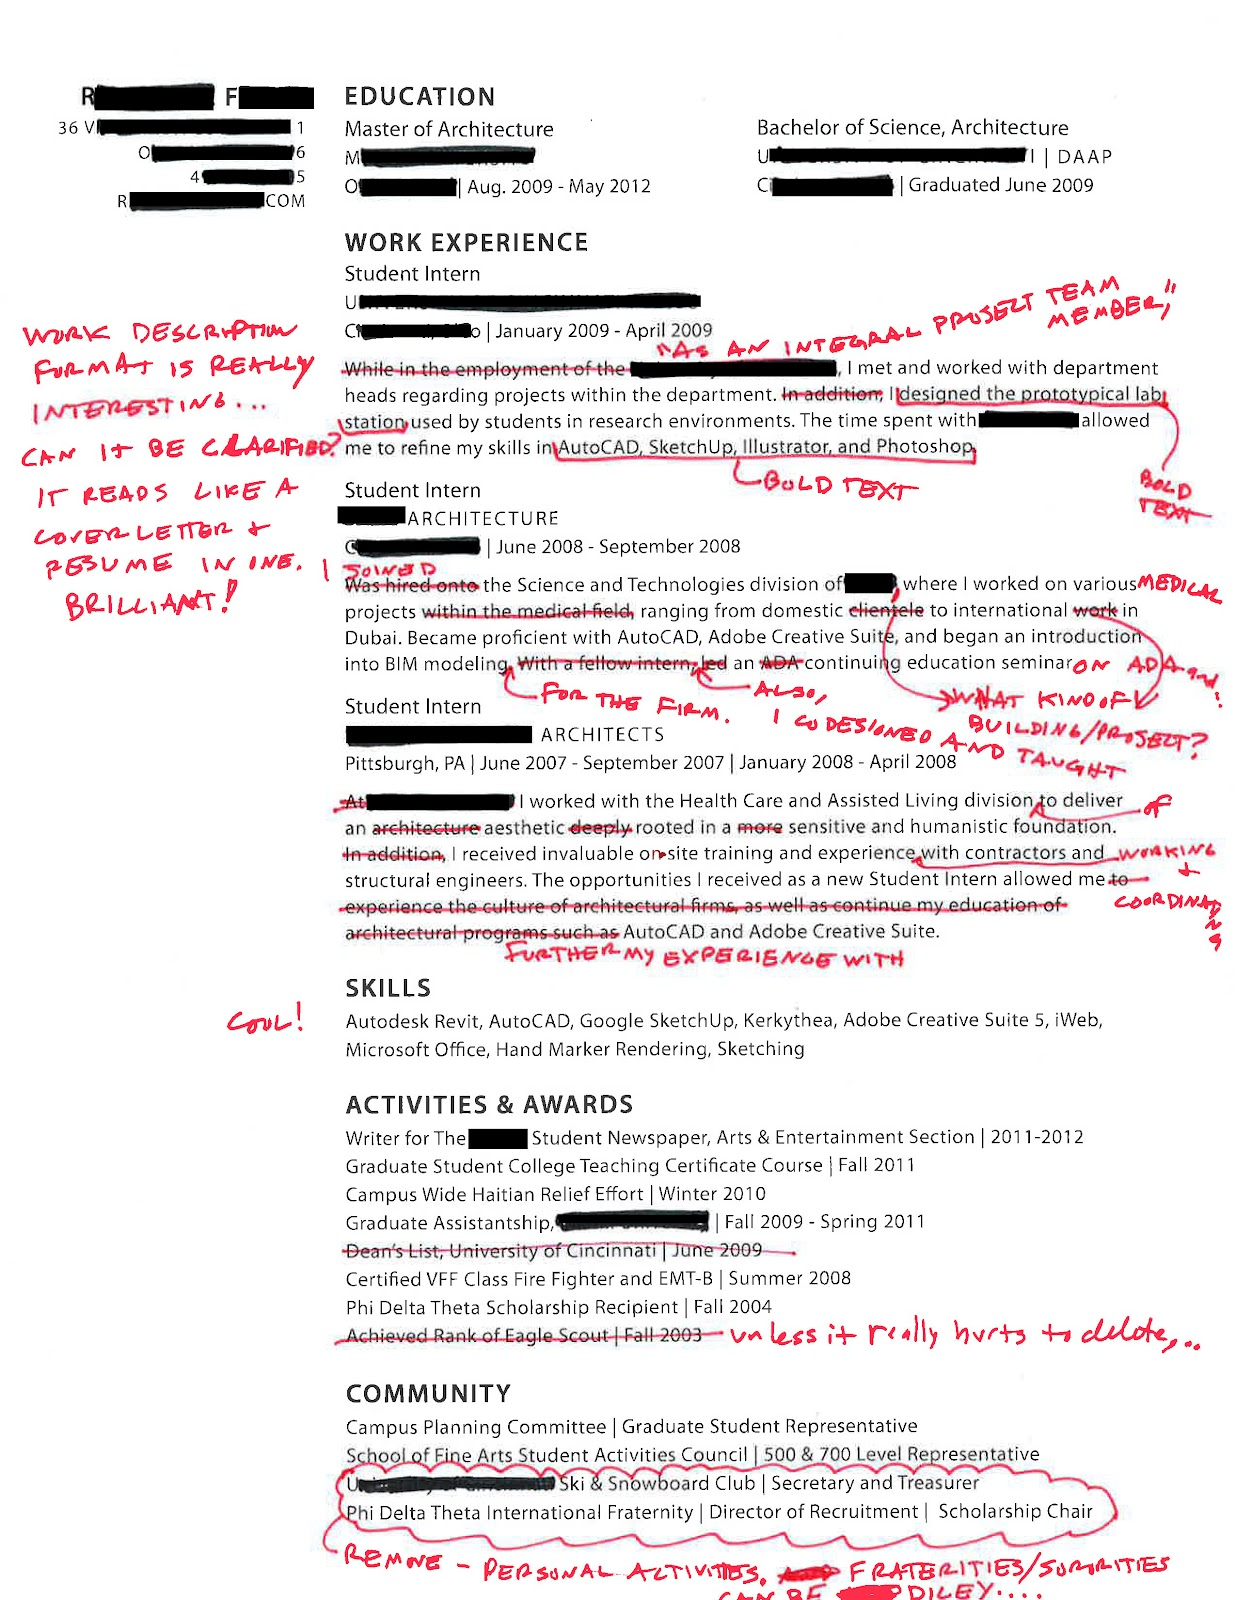 Intern 101 Redlined Resumes the importance of narrative and the importance of reflection